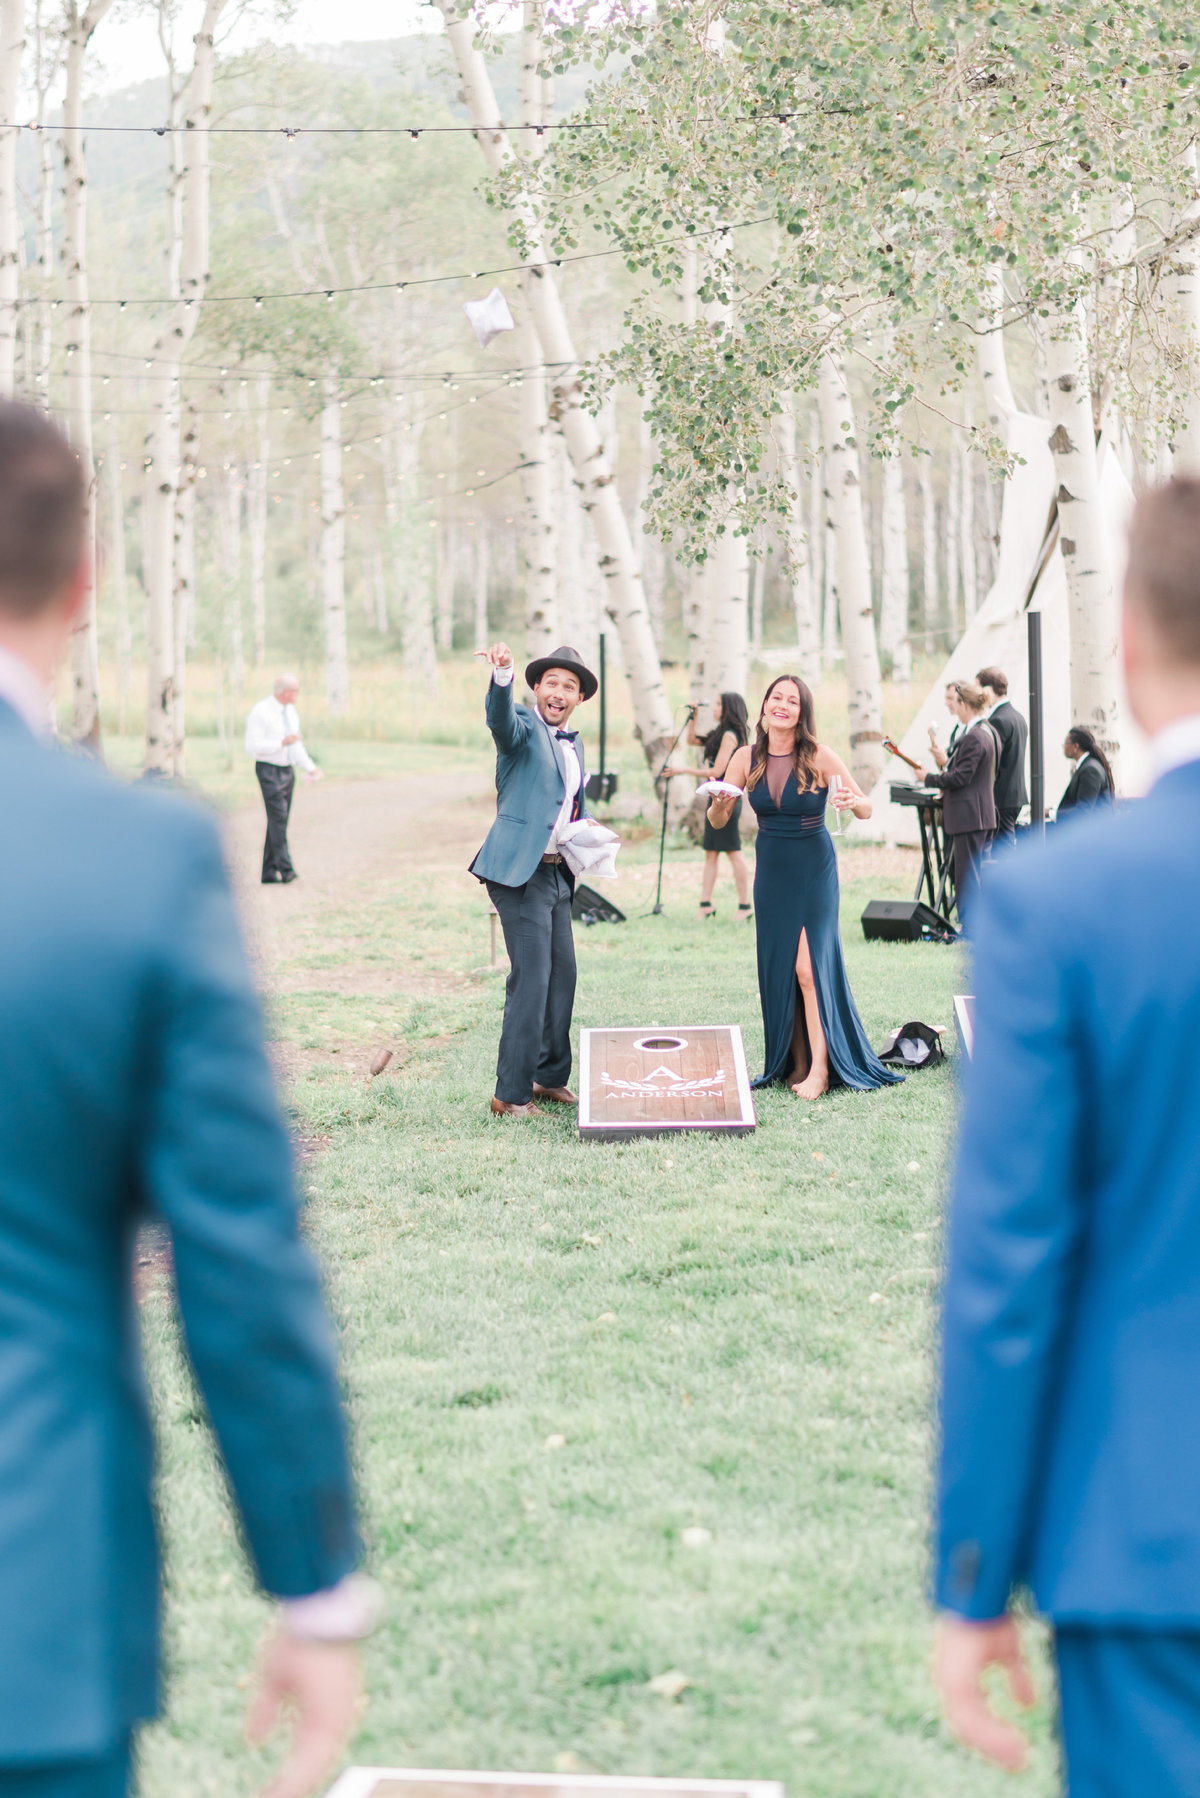 Kari_Ryan_Anderson_Colorado_Outdoor_Chapel_Wedding_Valorie_Darling_Photography - 76 of 126